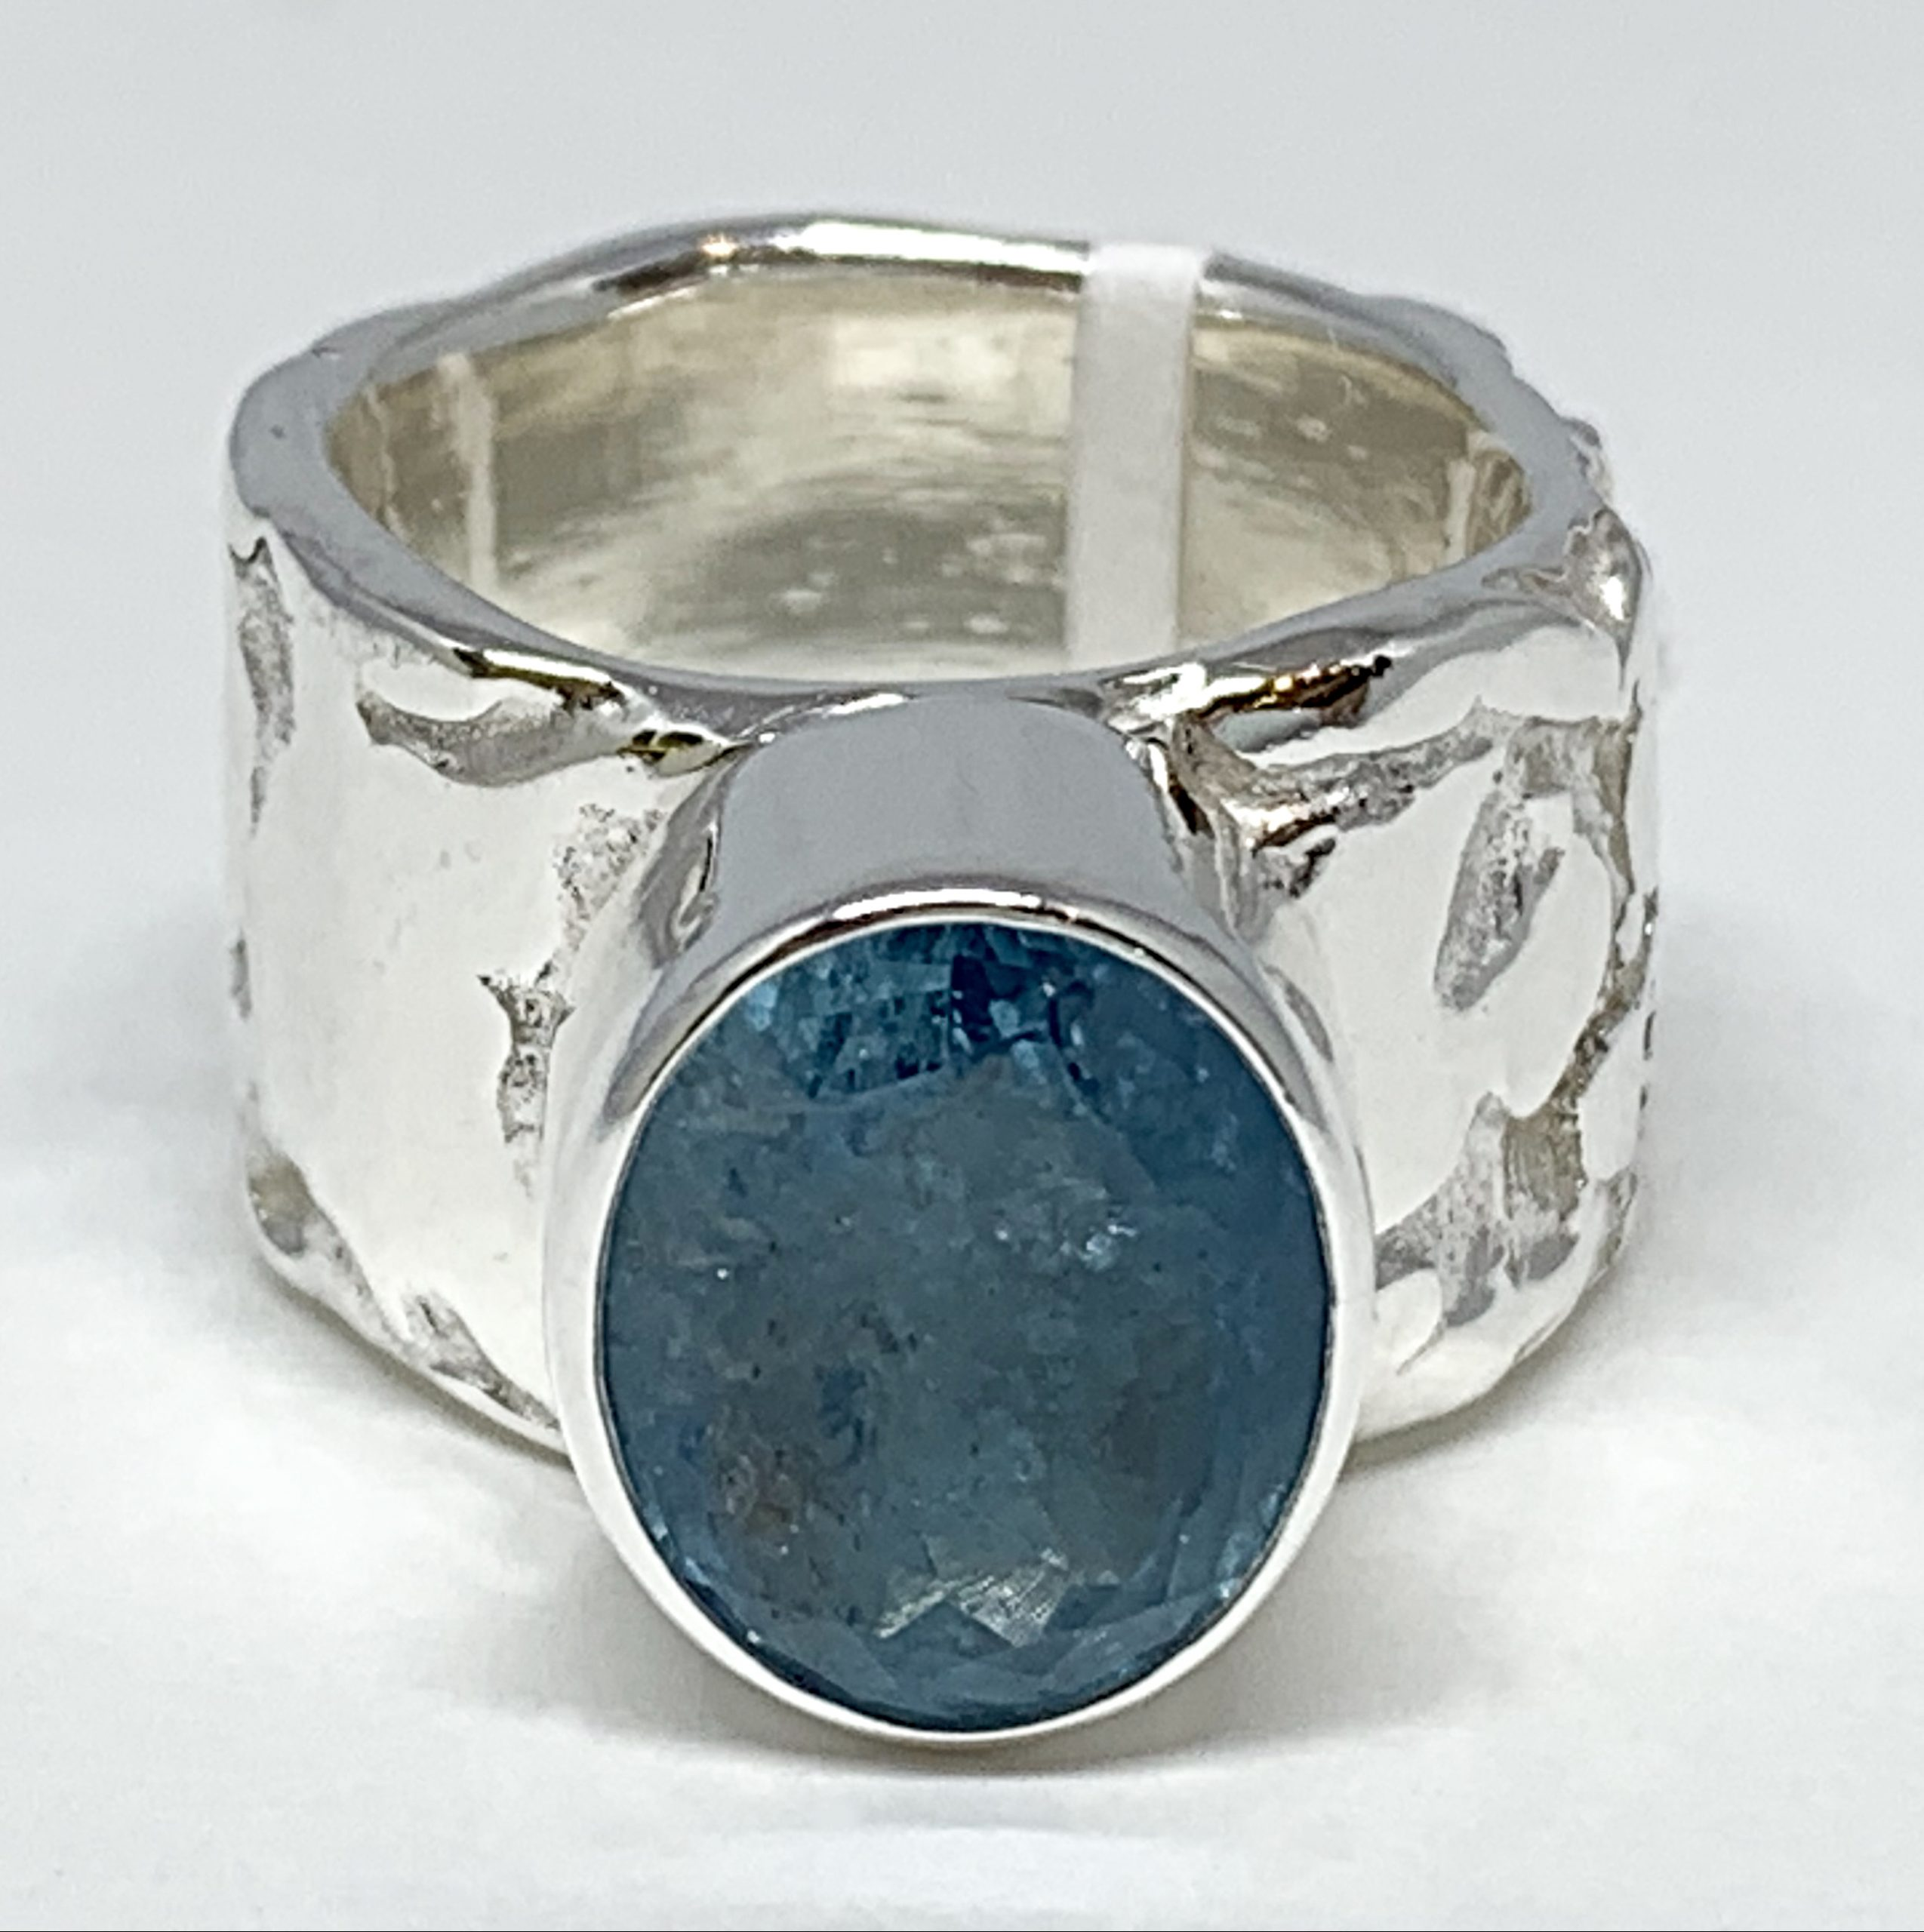 Handmade sterling silver and raw aquamarine ring by A&R Jewellery   Effusion Art Gallery + Cast Glass Studio, Invermere BC